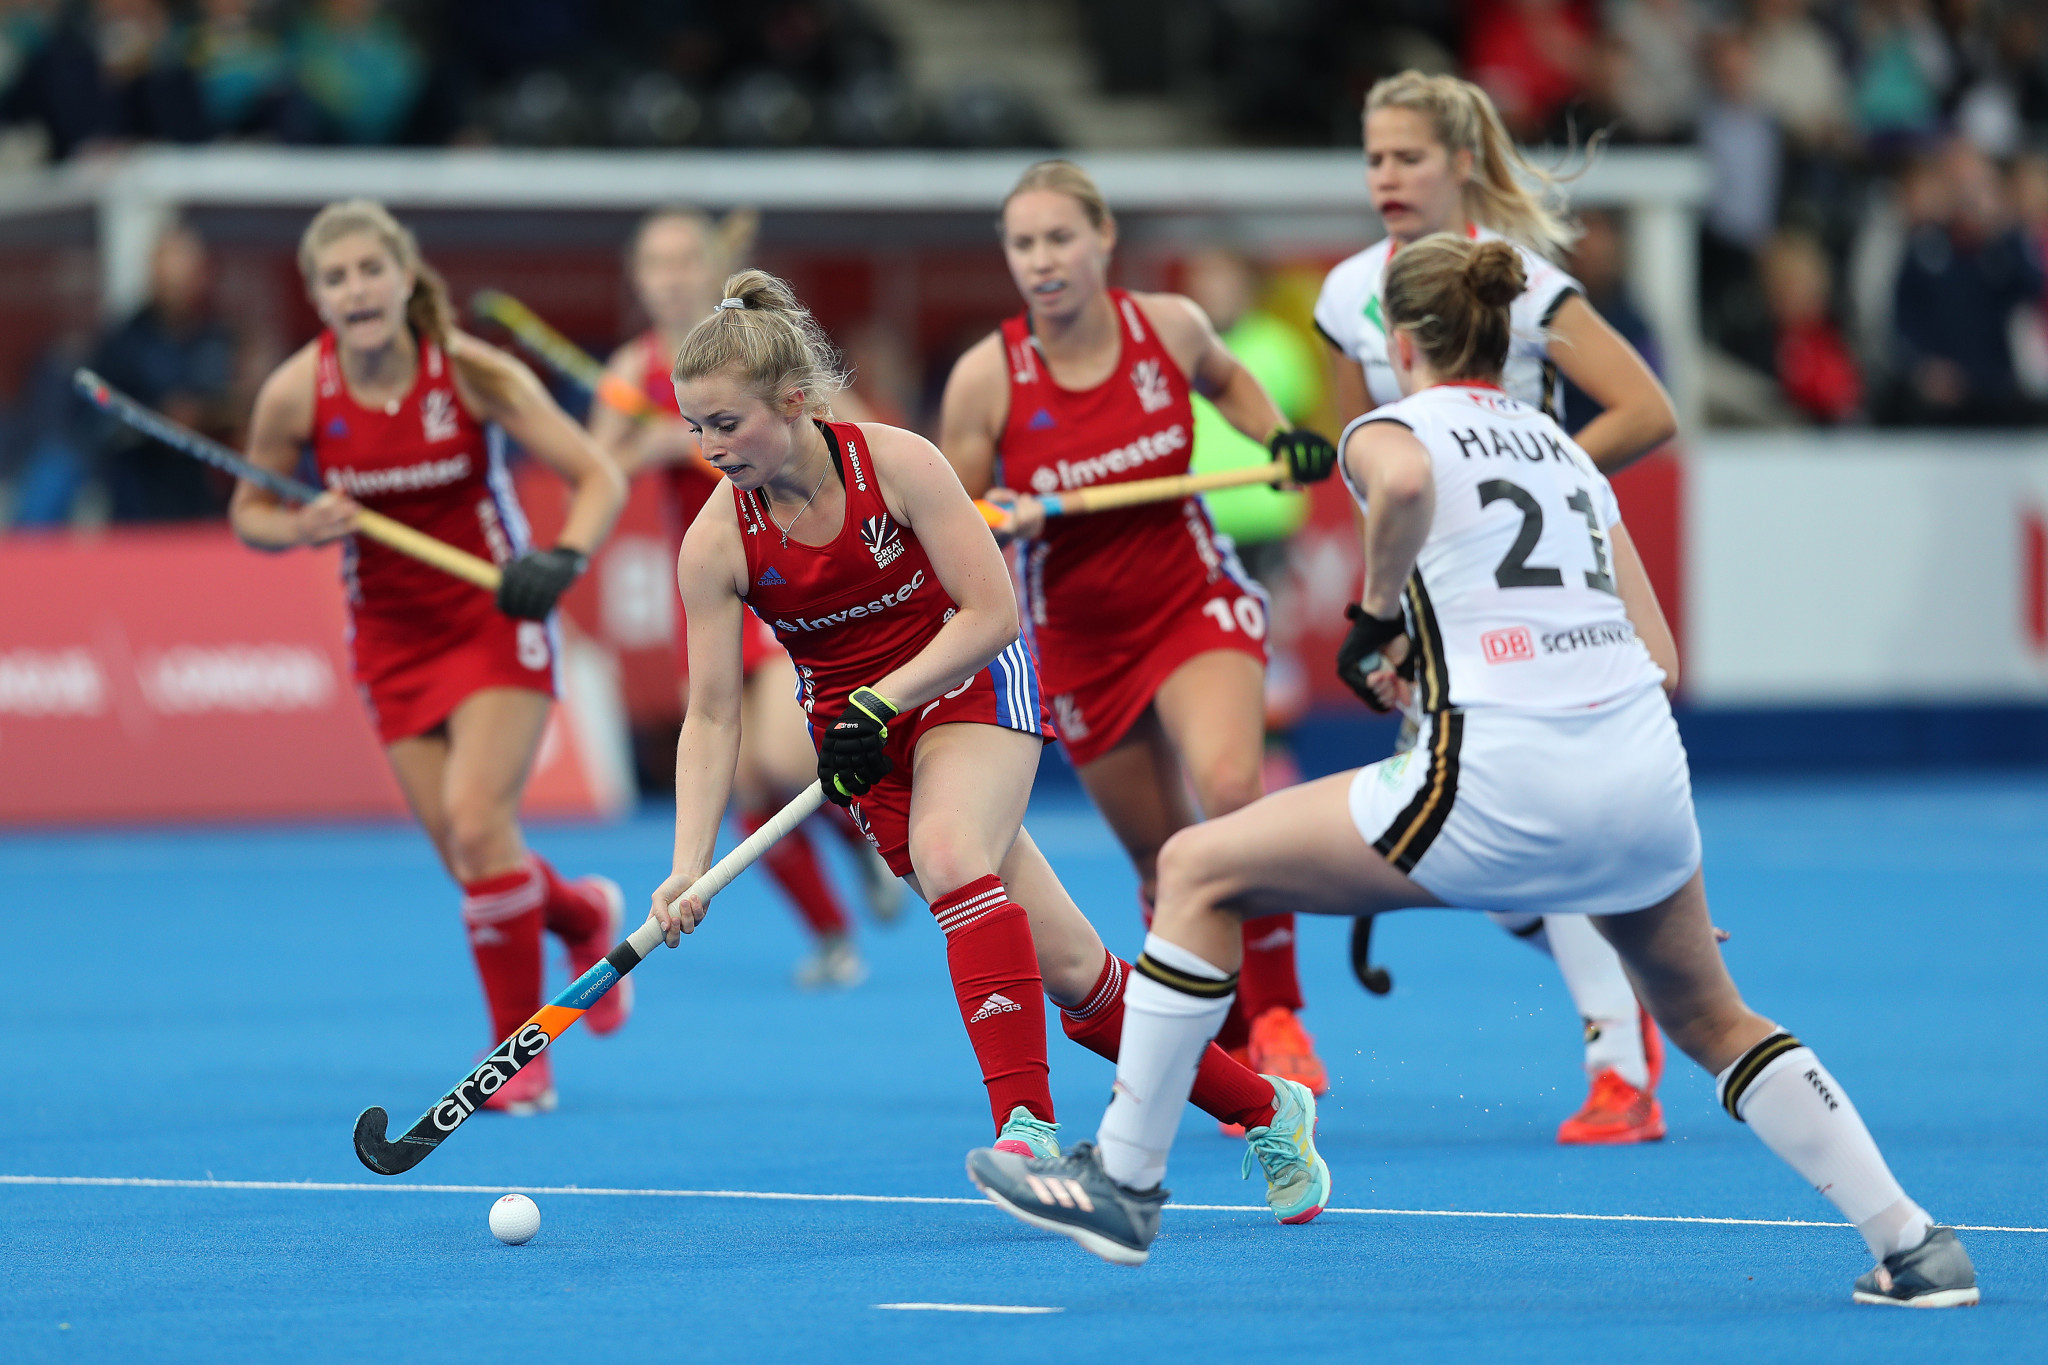 FIH postpone two Pro League matches due to COVID-19 travel restrictions